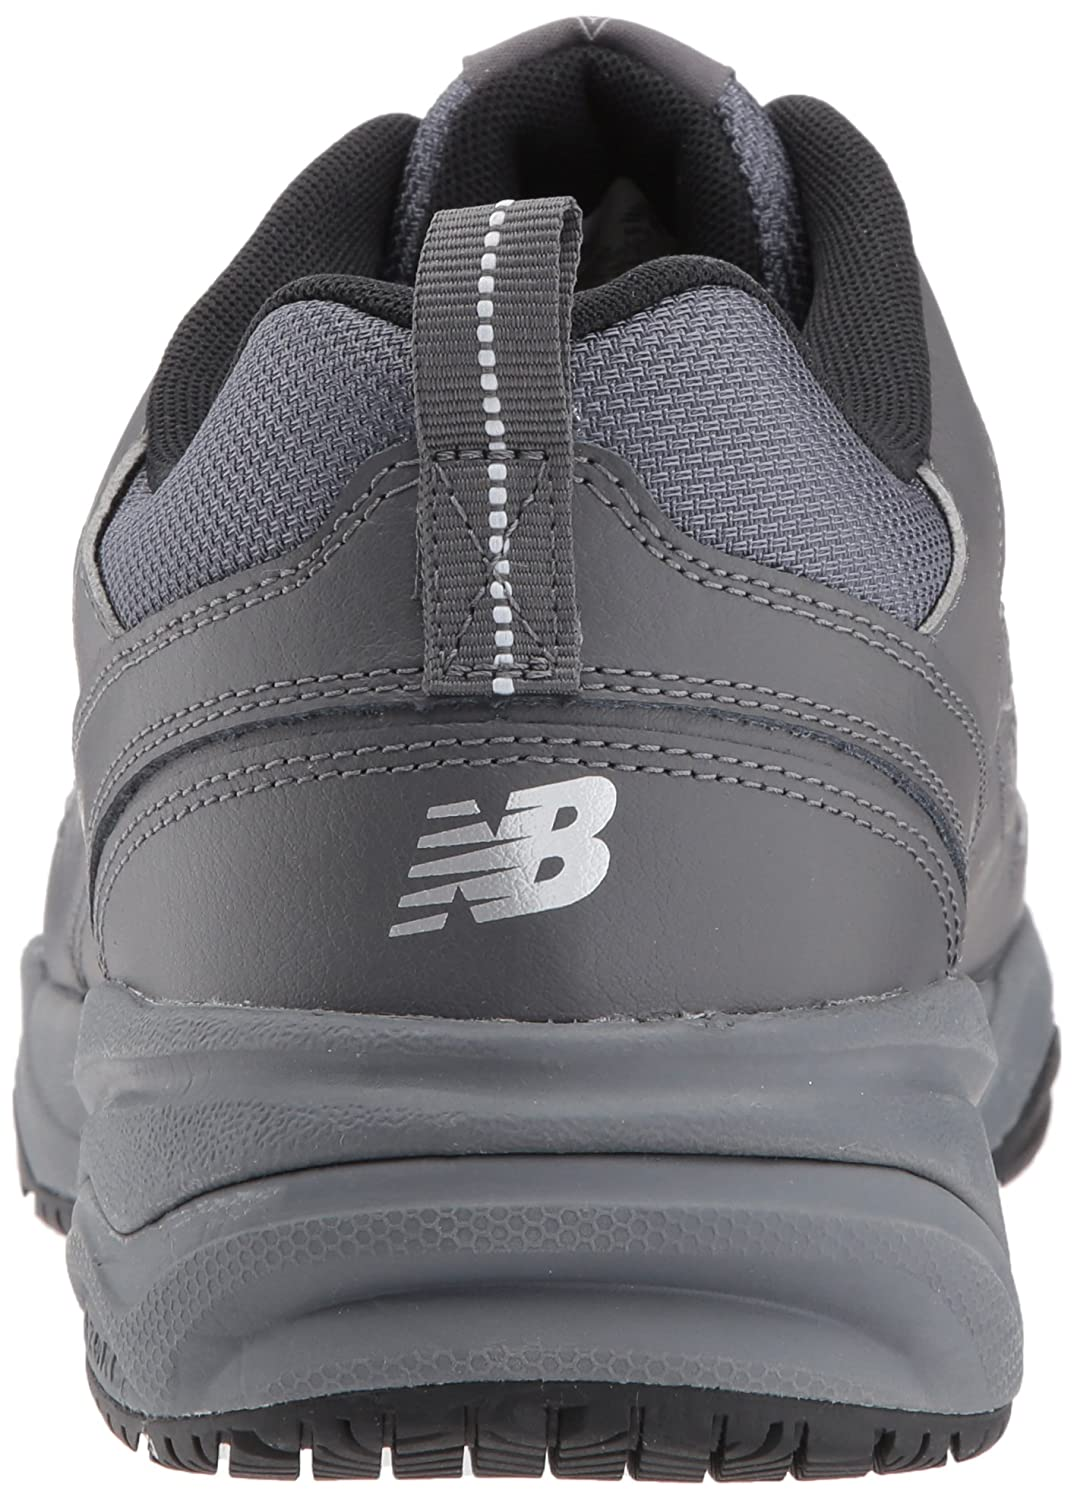 New Balance Men's MID626v2 Work Training schuhe, schuhe, schuhe, grau schwarz, 11.5 2E US 60cc84